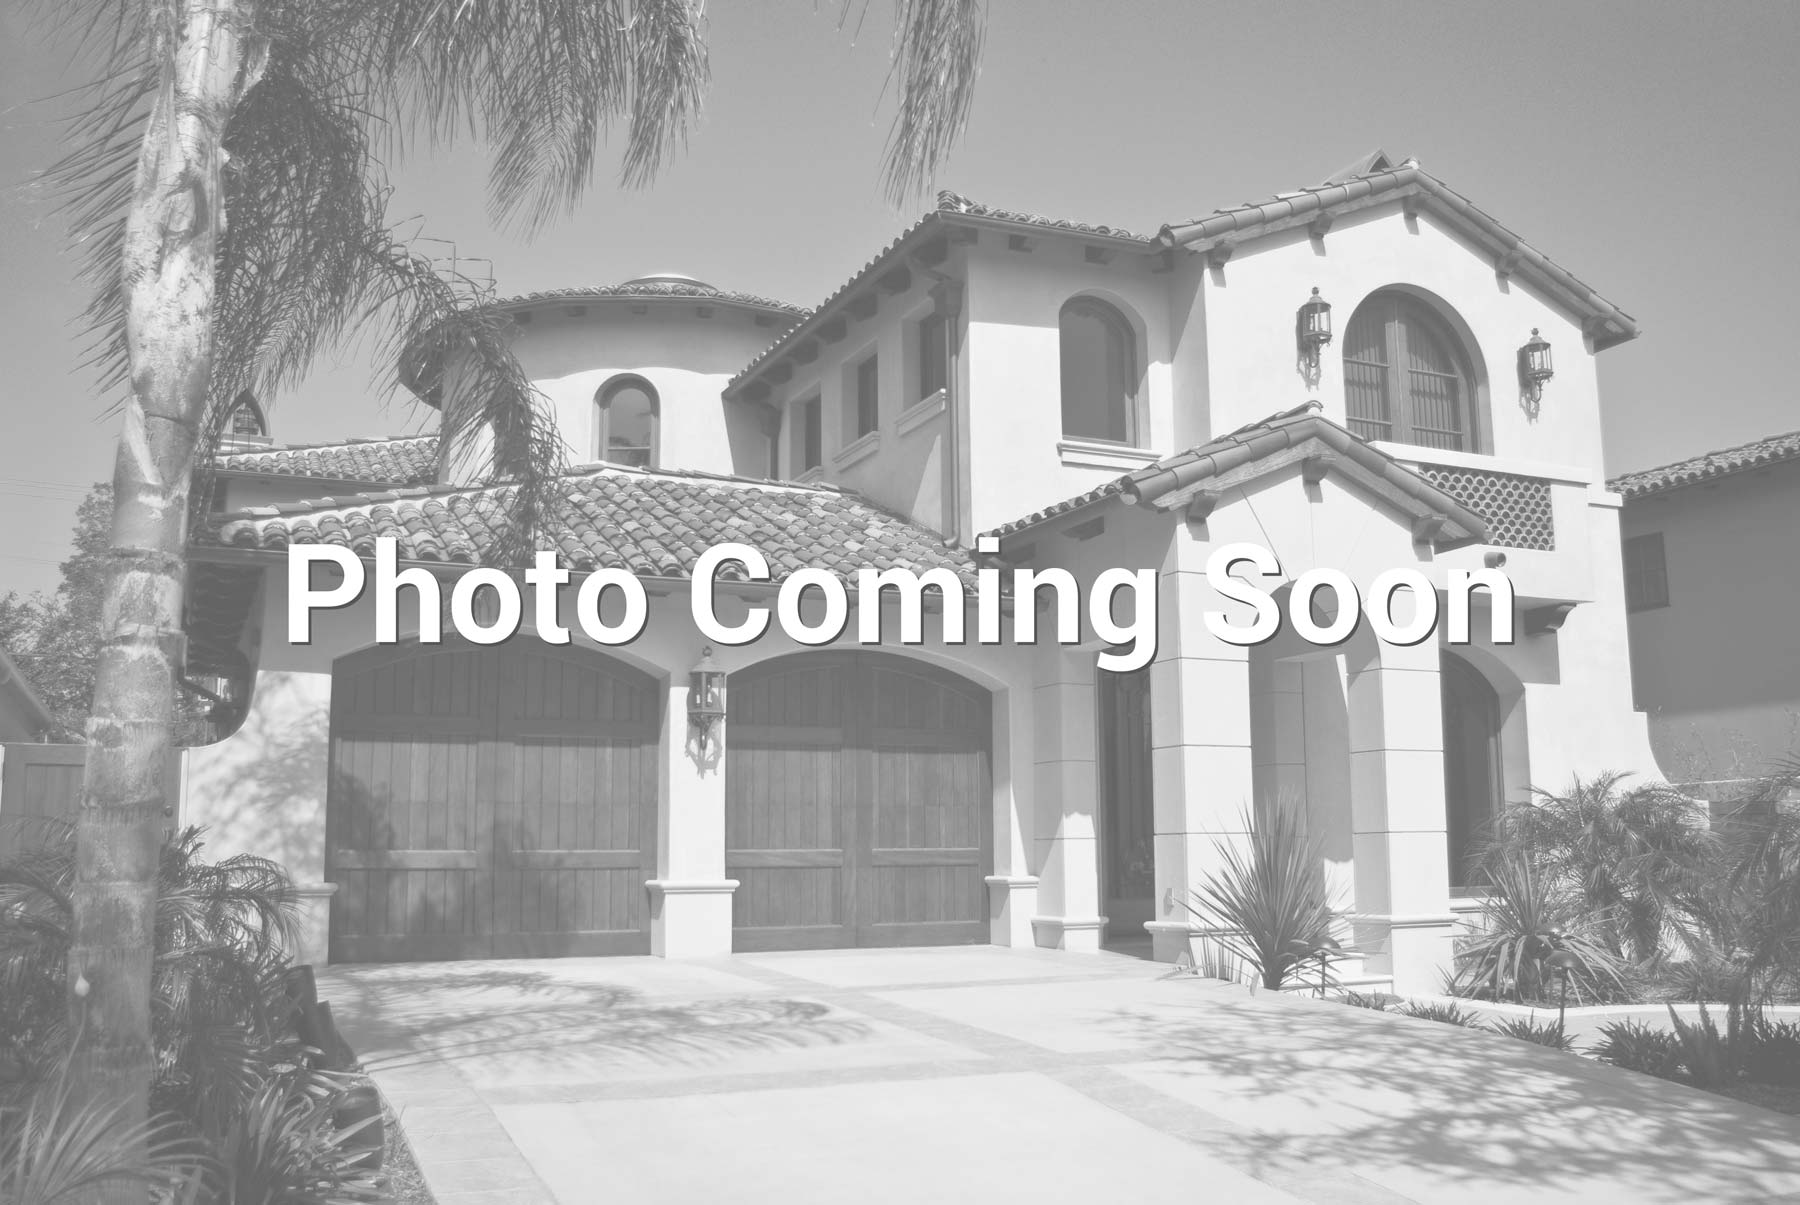 $740,000 - 6Br/3Ba -  for Sale in Antioch, Antioch